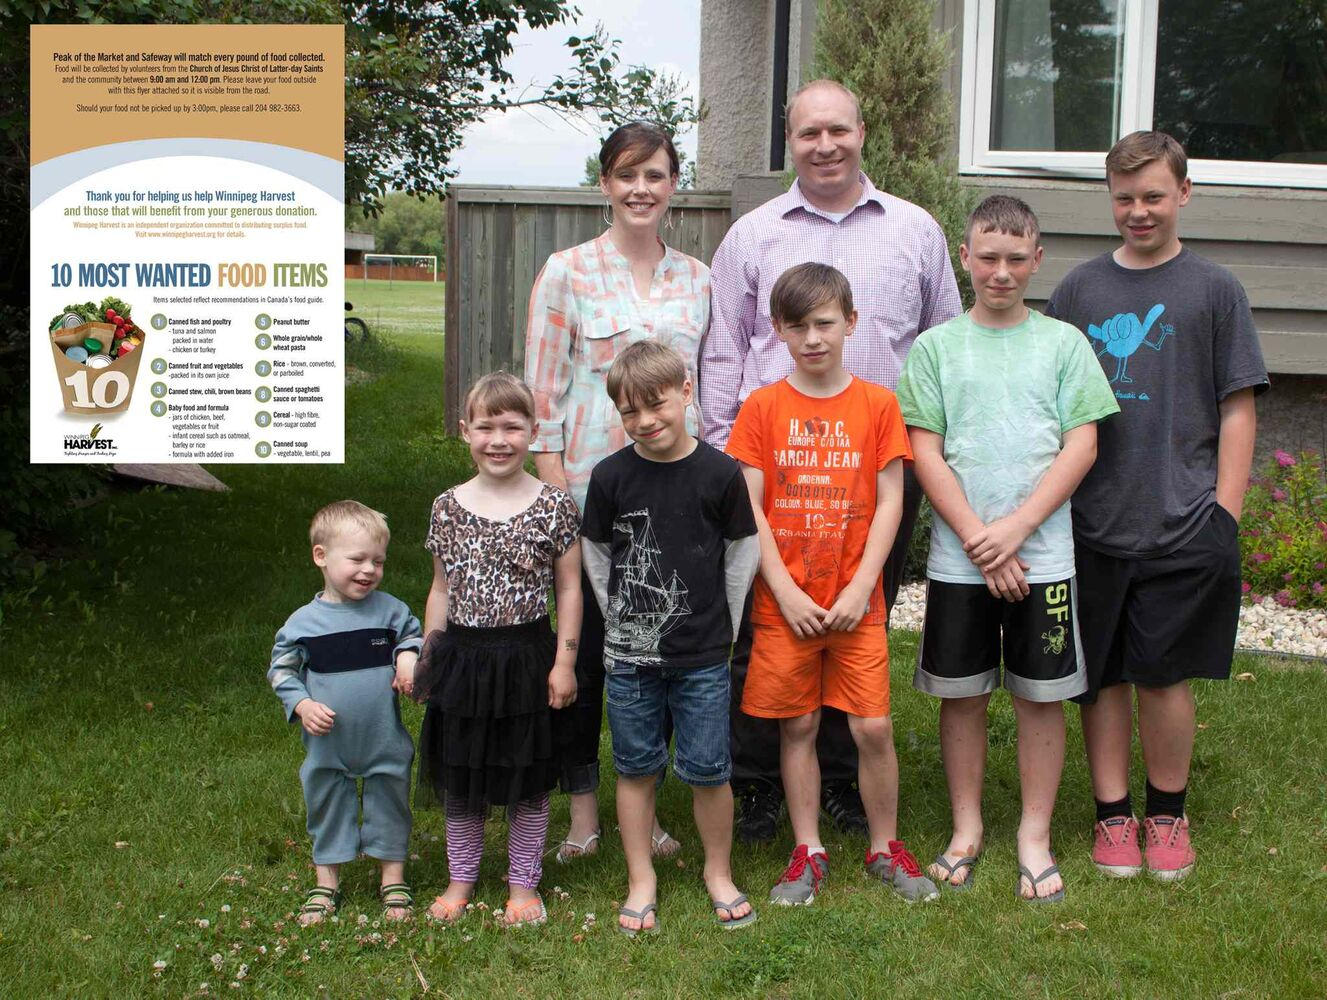 The 10th annual Latter-day Saints Summer Food Drive kicks off Saturday, June 18, 2015. Volunteers will be dropping off a flyer listing Winnipeg Harvest's 10 most-needed items during the lean summer months. Pictured, from left, are Jill and Josh Gruninger with their children, Corbin, Britain, Gavin, Benson, Jaxon and Ethan.